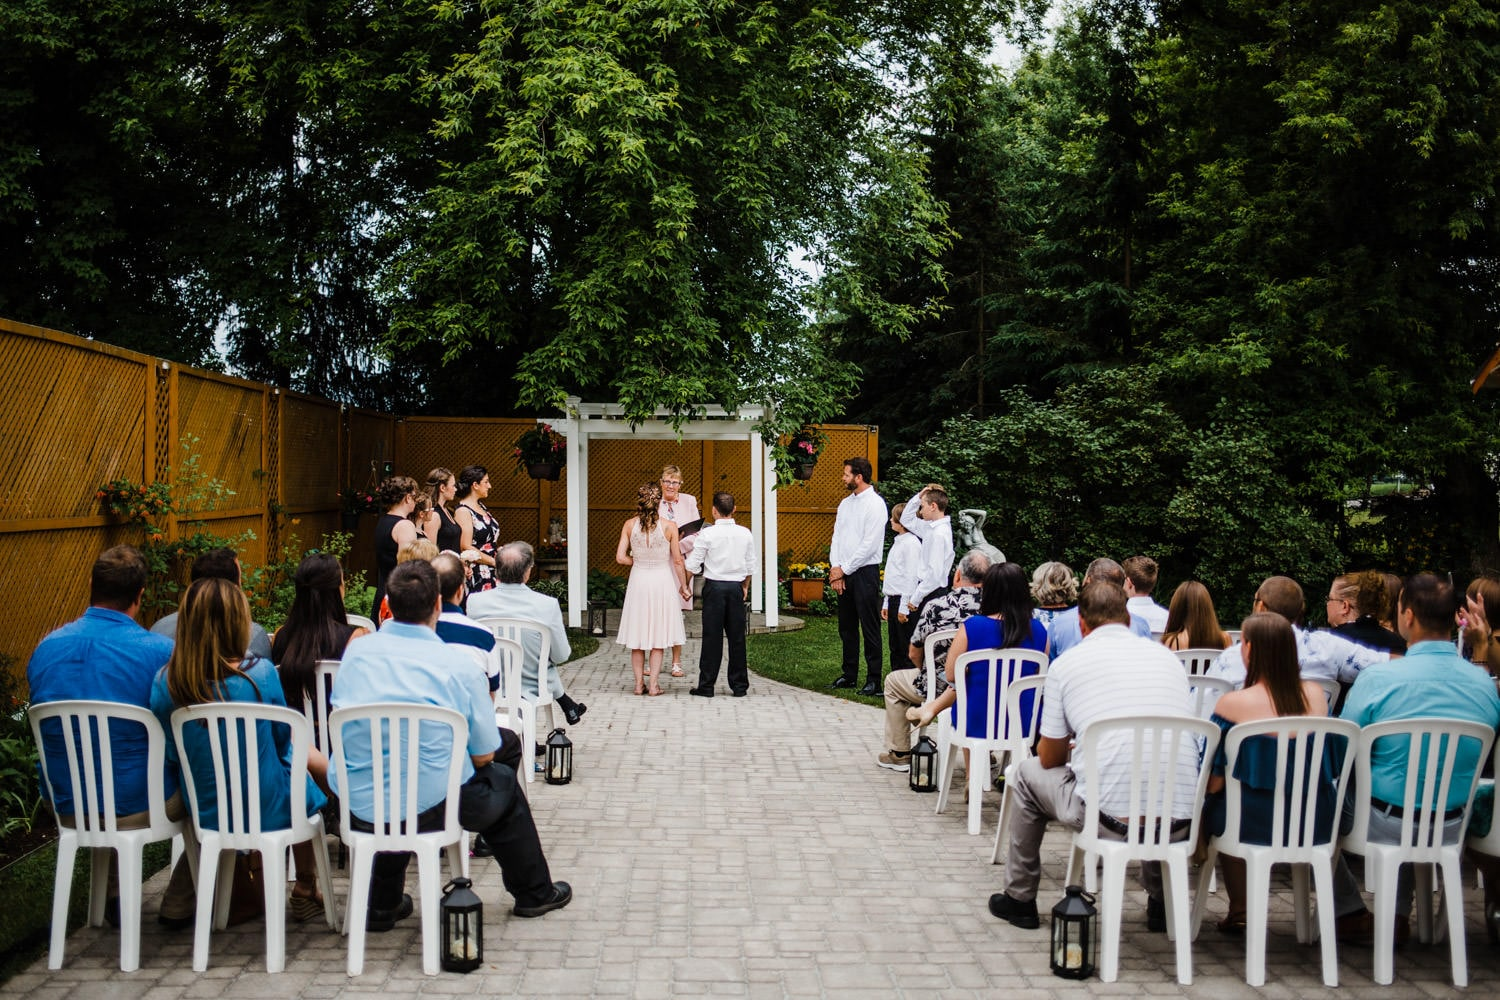 intimate wedding at the schoolhouse - small outdoor wedding ottawa